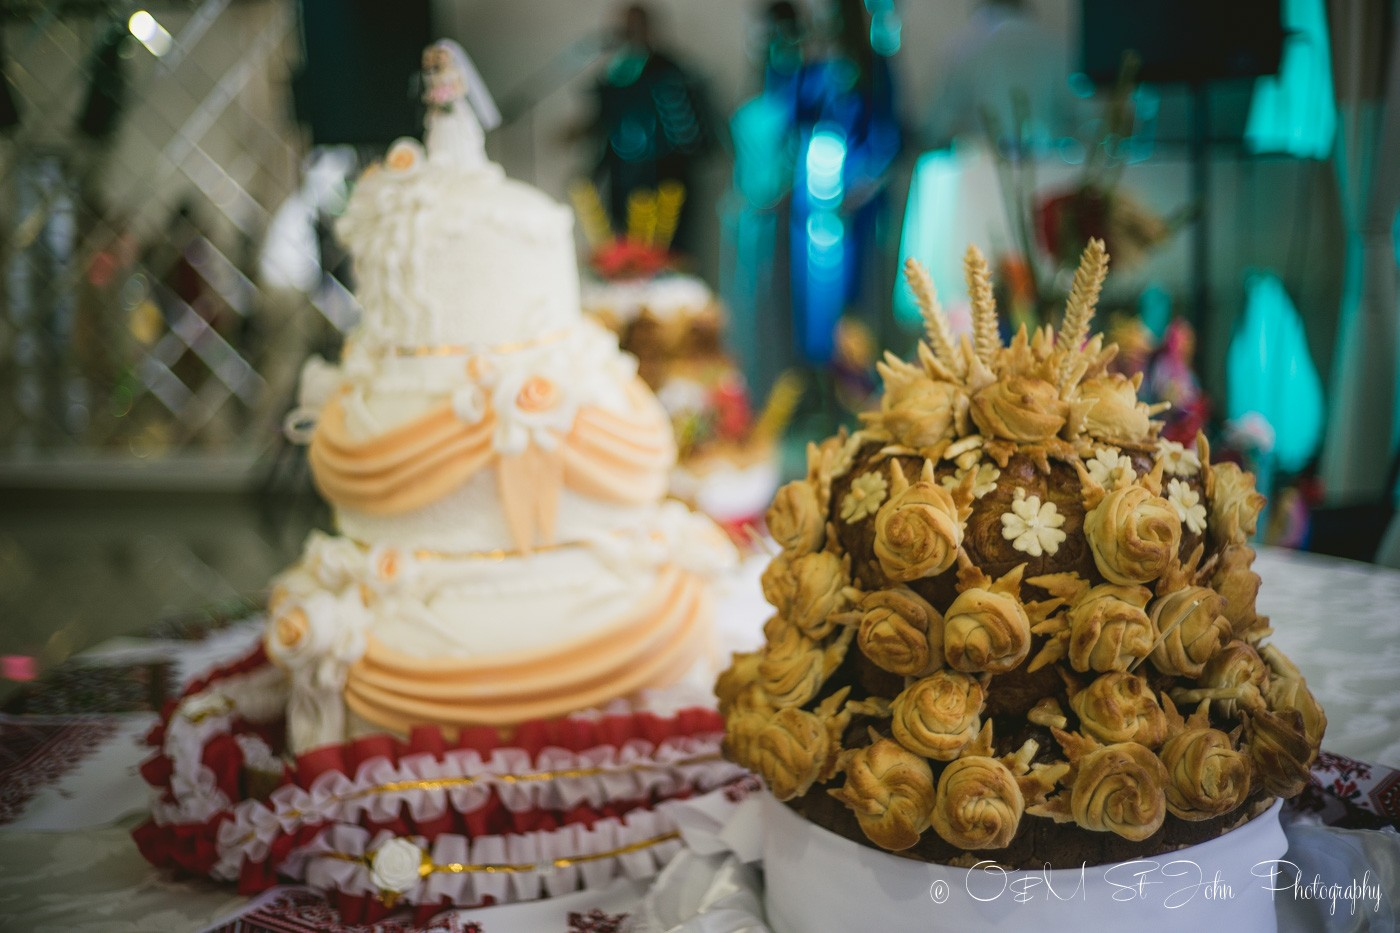 Korovai and Western Wedding cake at my cousin's wedding reception. Ukraine